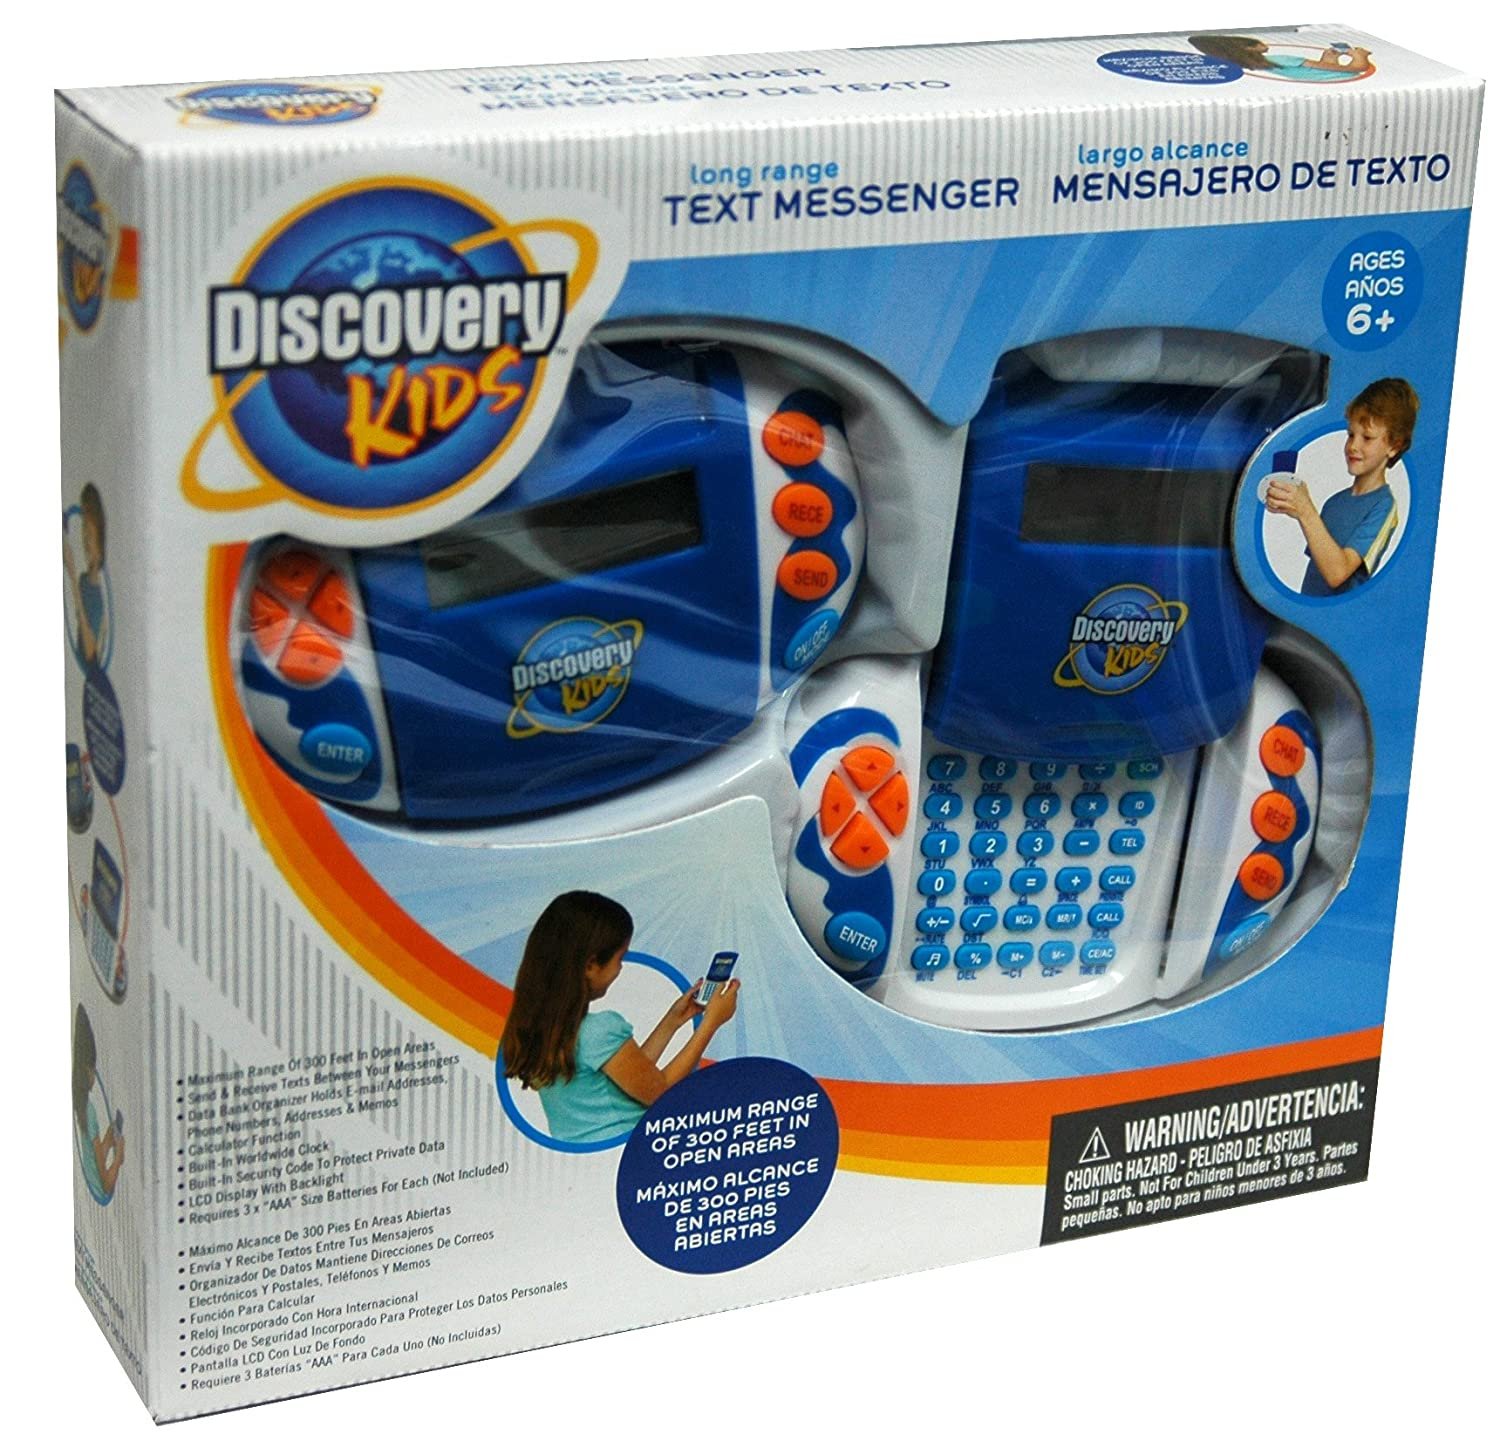 Amazon.com: Discovery Kids Long Range Text Messenger - Blue (Includes 2 Text Messengers): Toys & Games